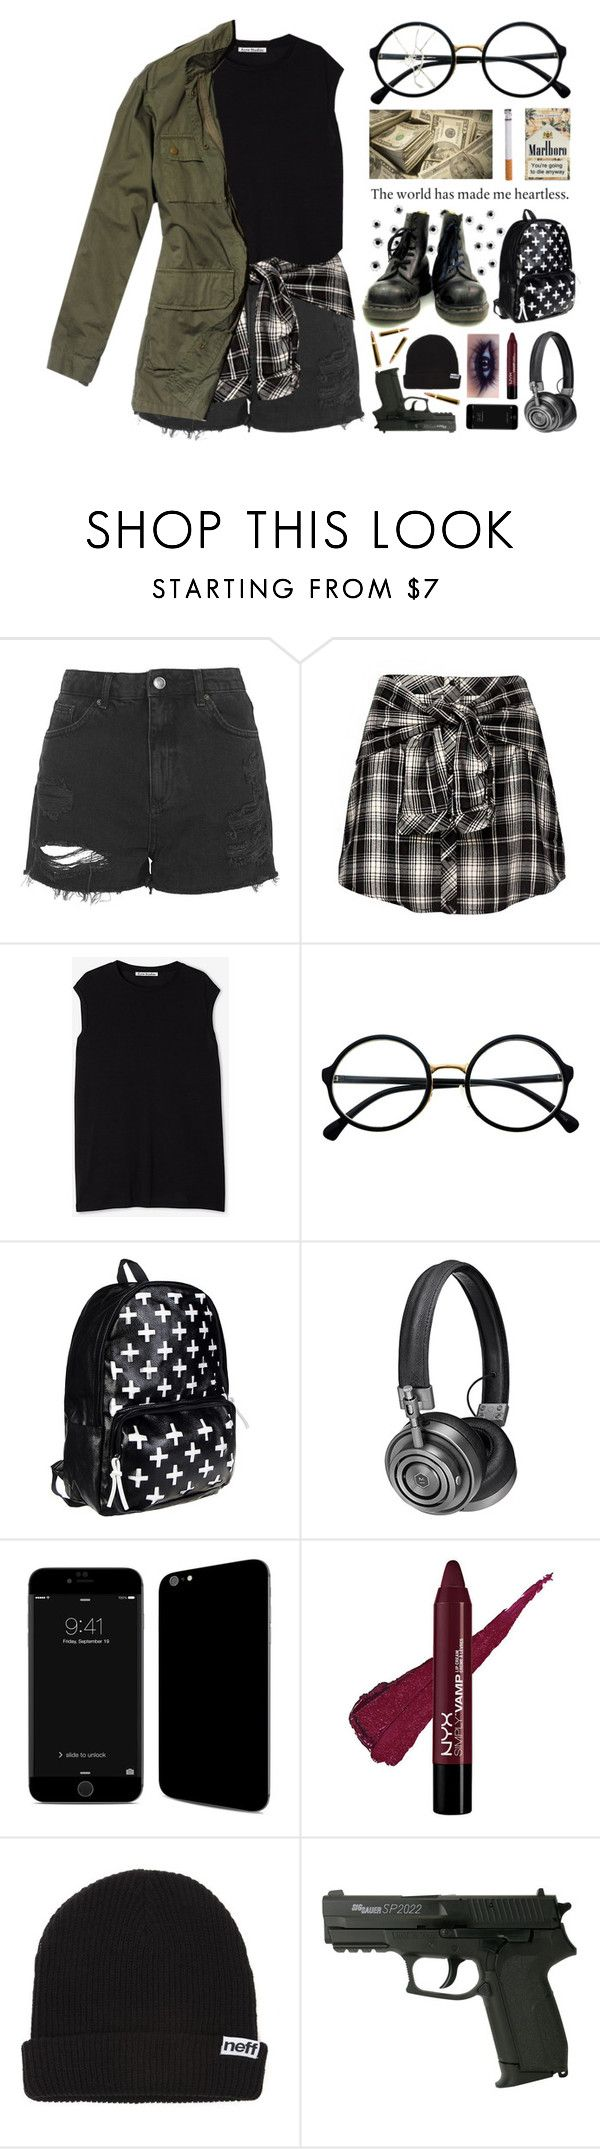 """Anti-social Behaviour (Quick)"" by alex-fox1 ❤ liked on Polyvore featuring Topshop, Acne Studios, Nili Lotan, Retrò, Master & Dynamic, Neff, black, edgy, badass and blackoutfit"